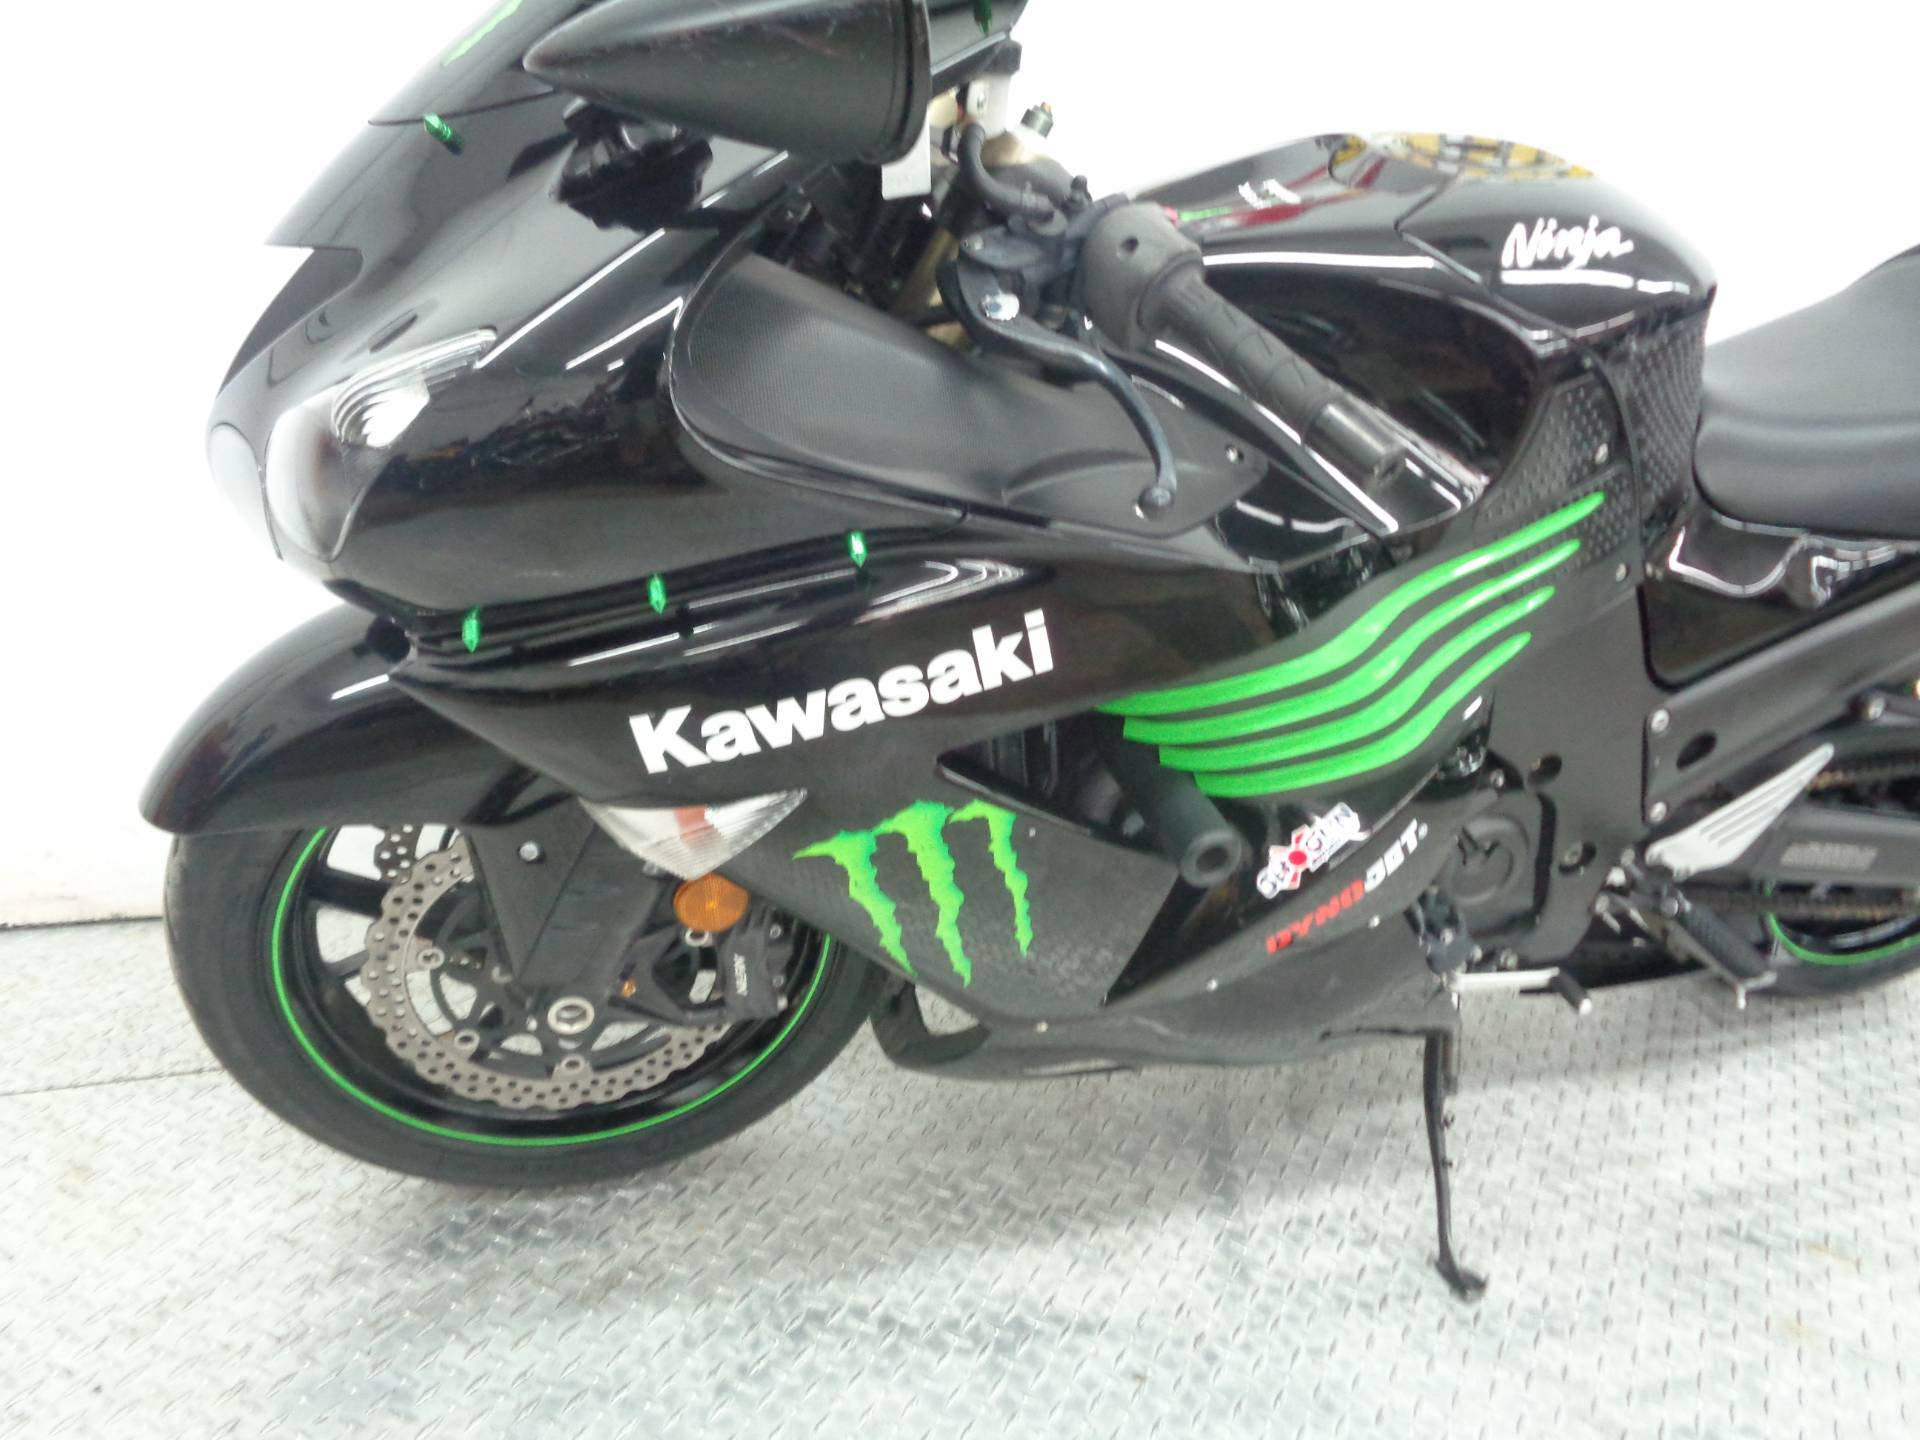 2009 Kawasaki Ninja ZX-14R Monster Energy in Tulsa, Oklahoma - Photo 5